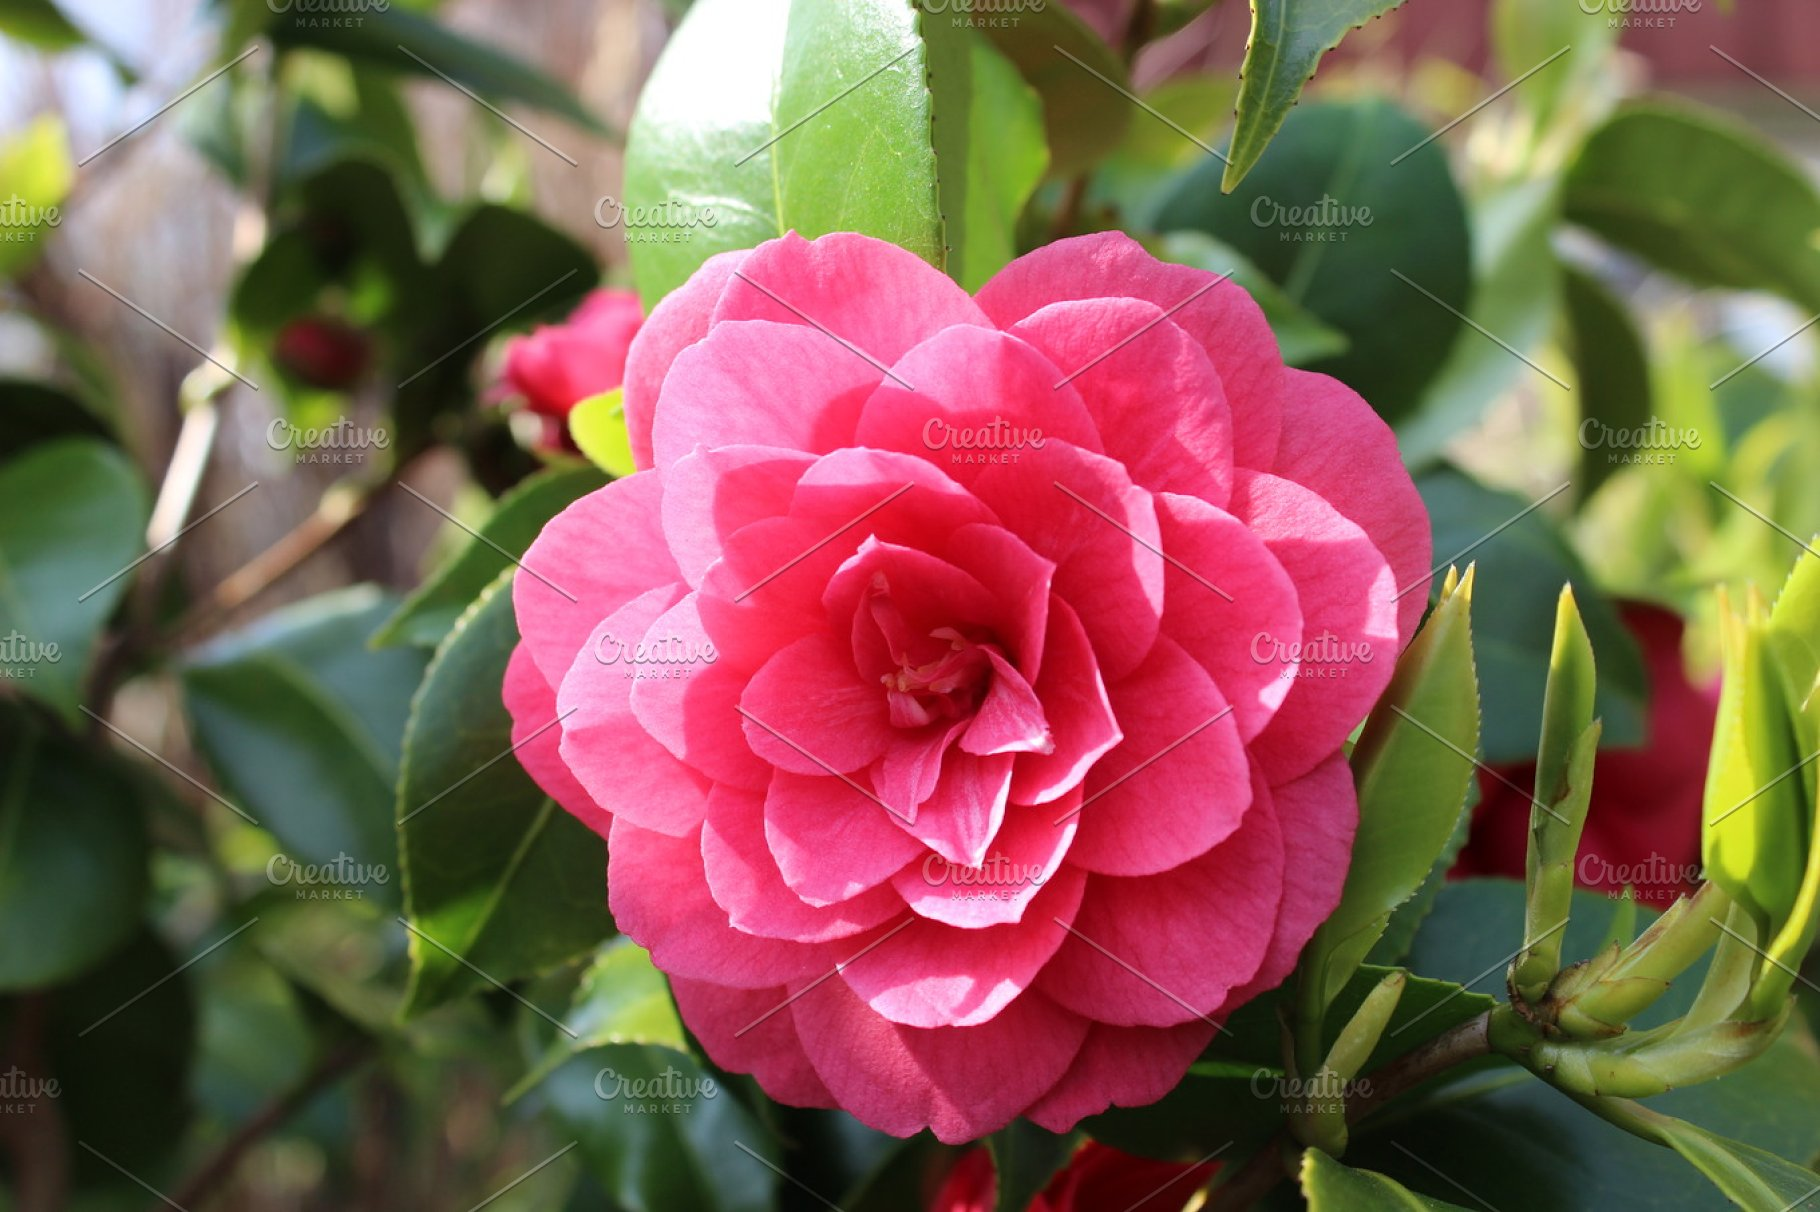 Pink Camellia Flowers High Quality Stock Photos Creative Market